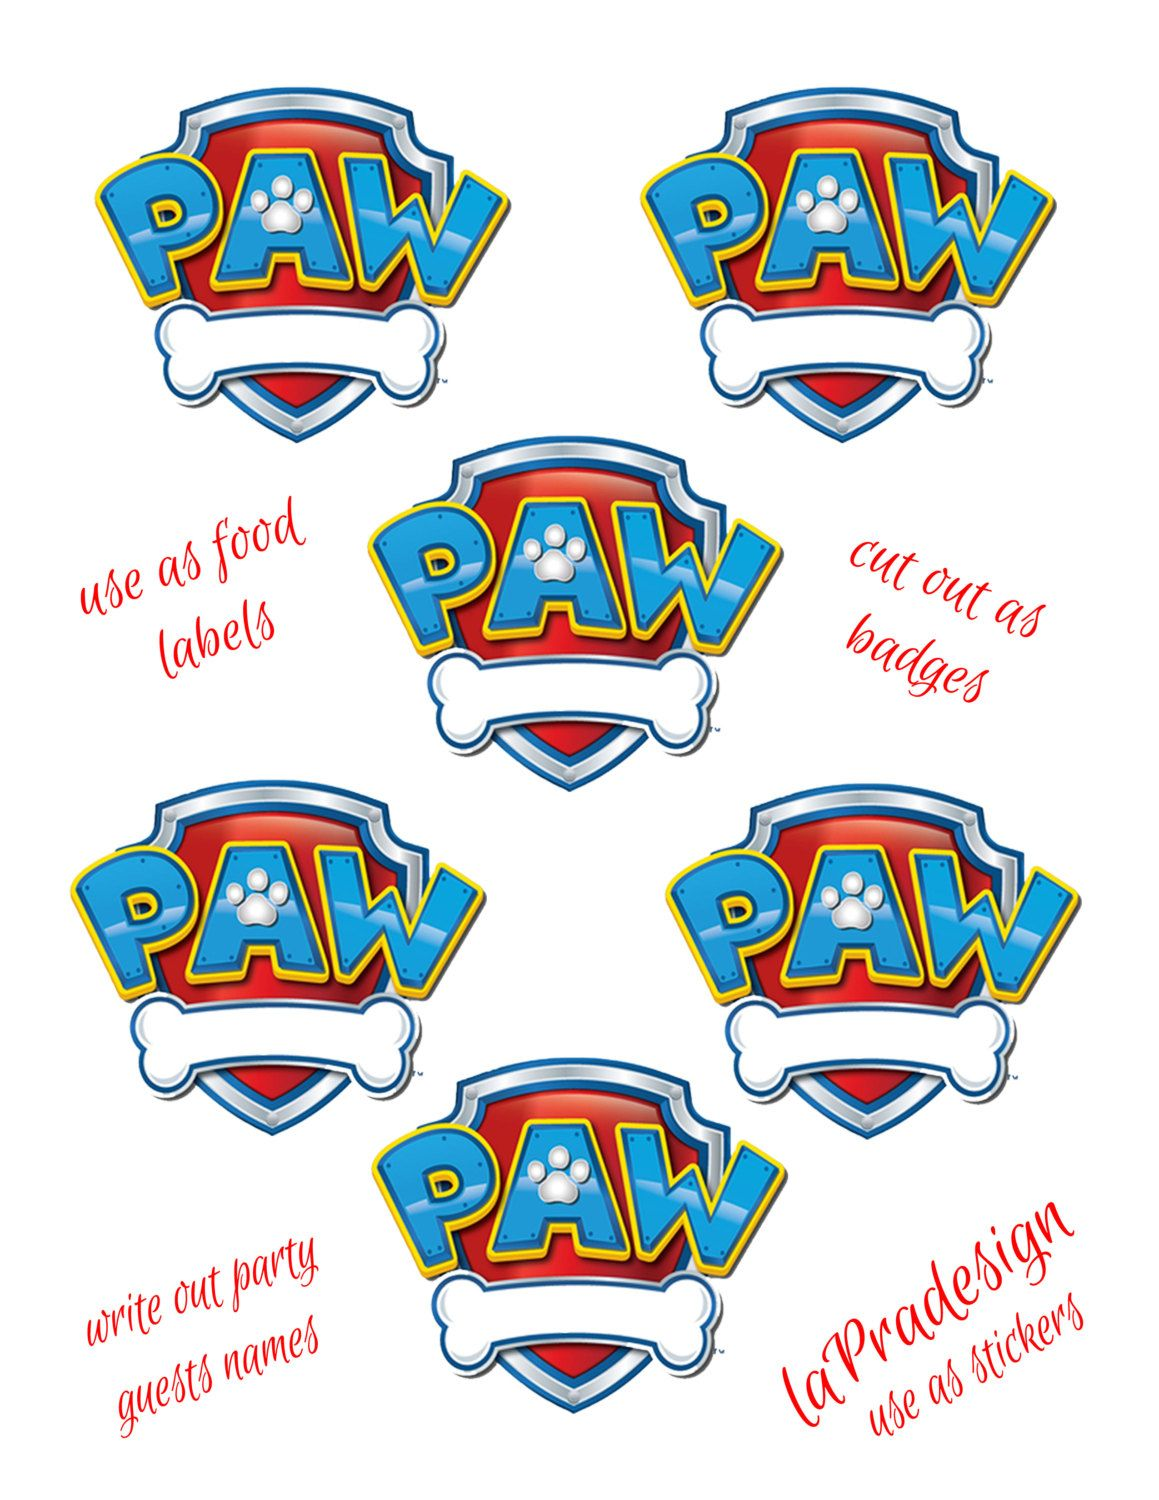 Paw Patrol Birthday Party Badge PDF file by laPradesign on